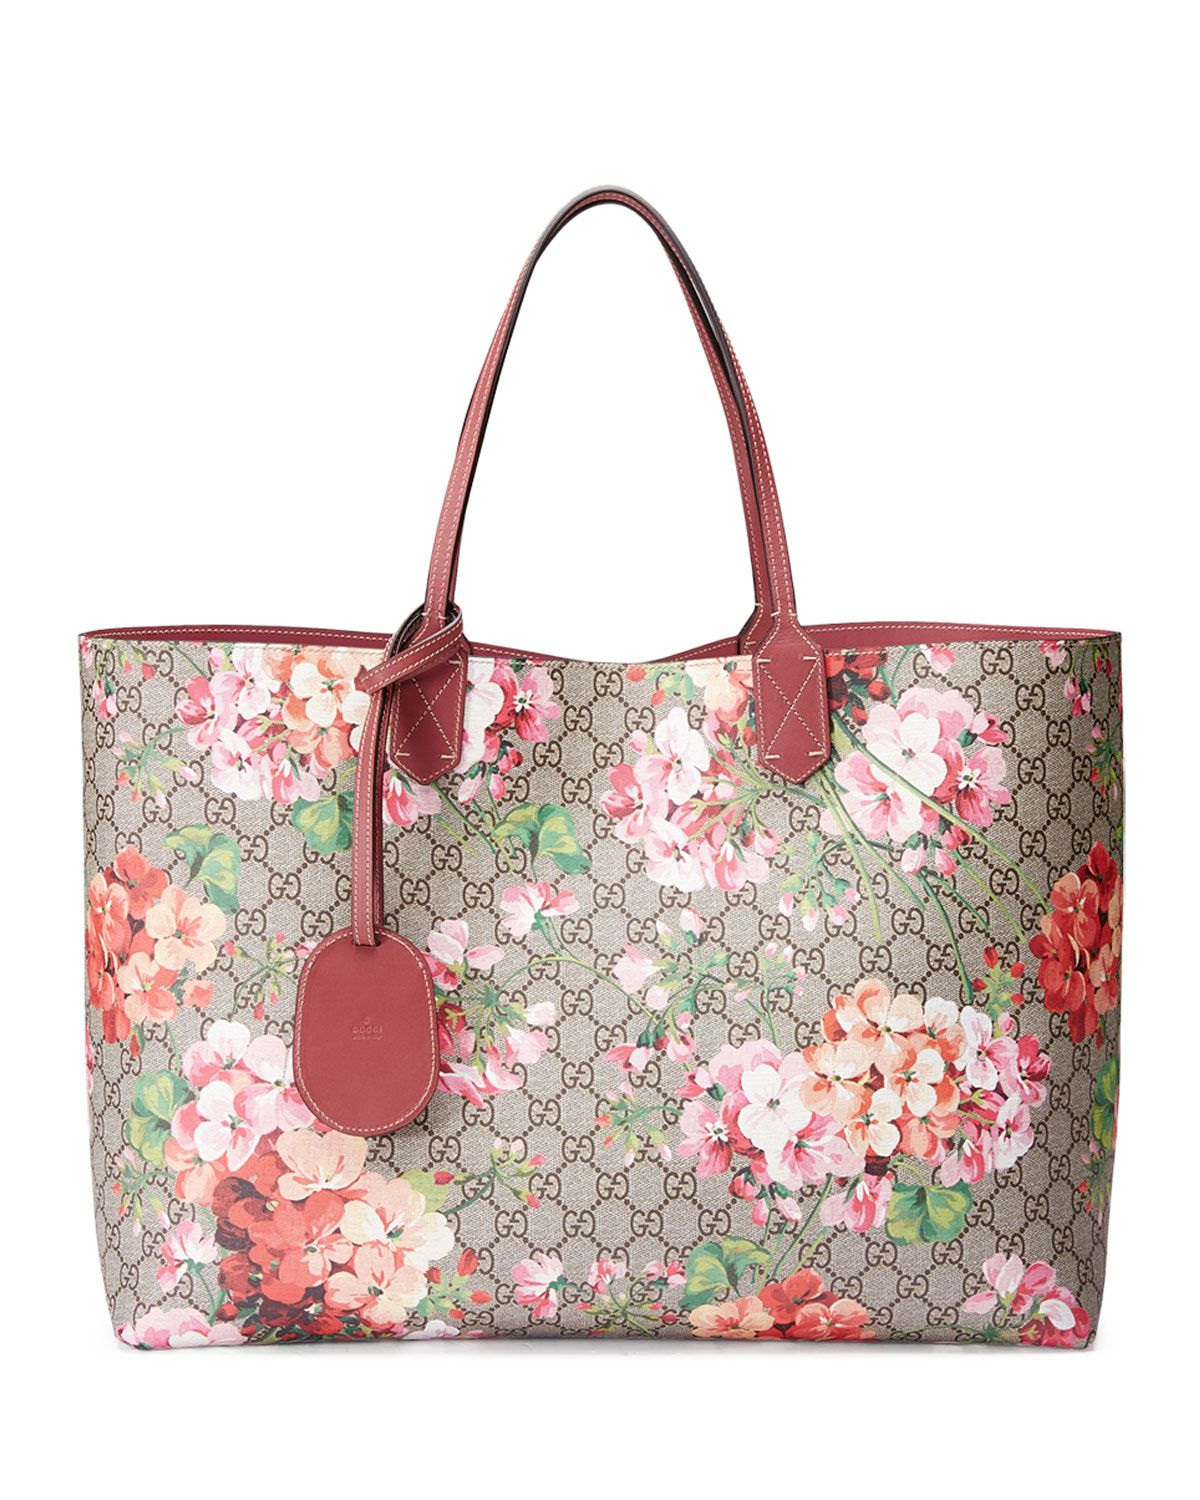 41b13e362c85 Gucci GG Blooms Large Reversible Leather Tote Bag, Multicolor, Multi Rose